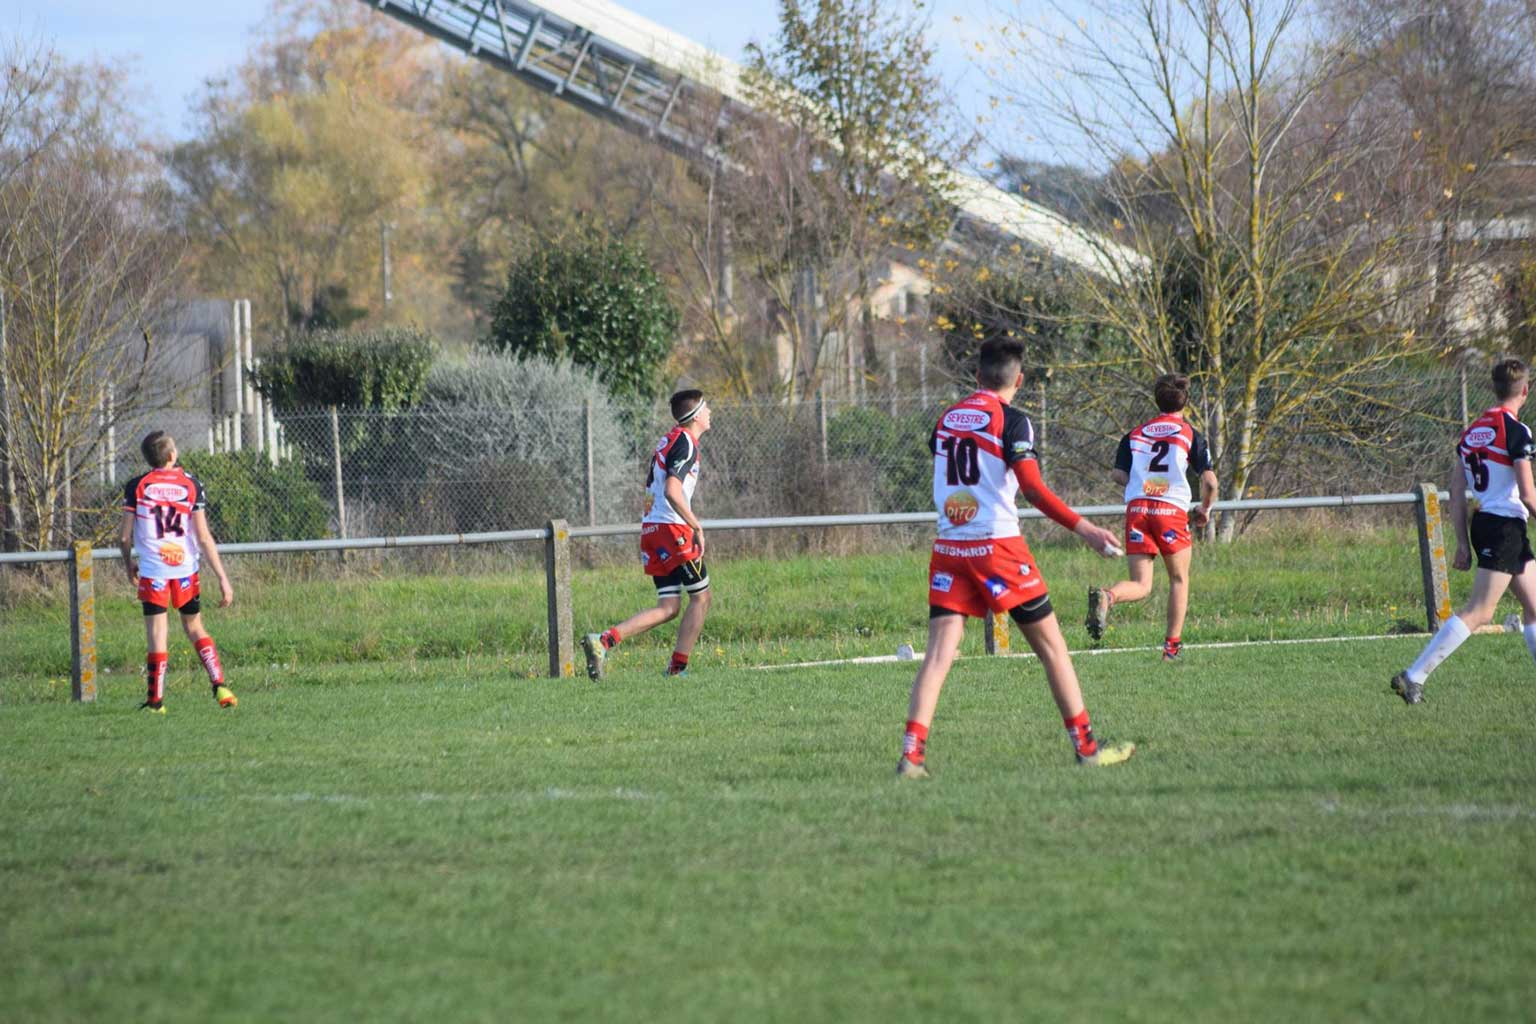 © Maeva Franco - U16 - Graulhet vs Alban/Valence/Lacaune - Photo 28